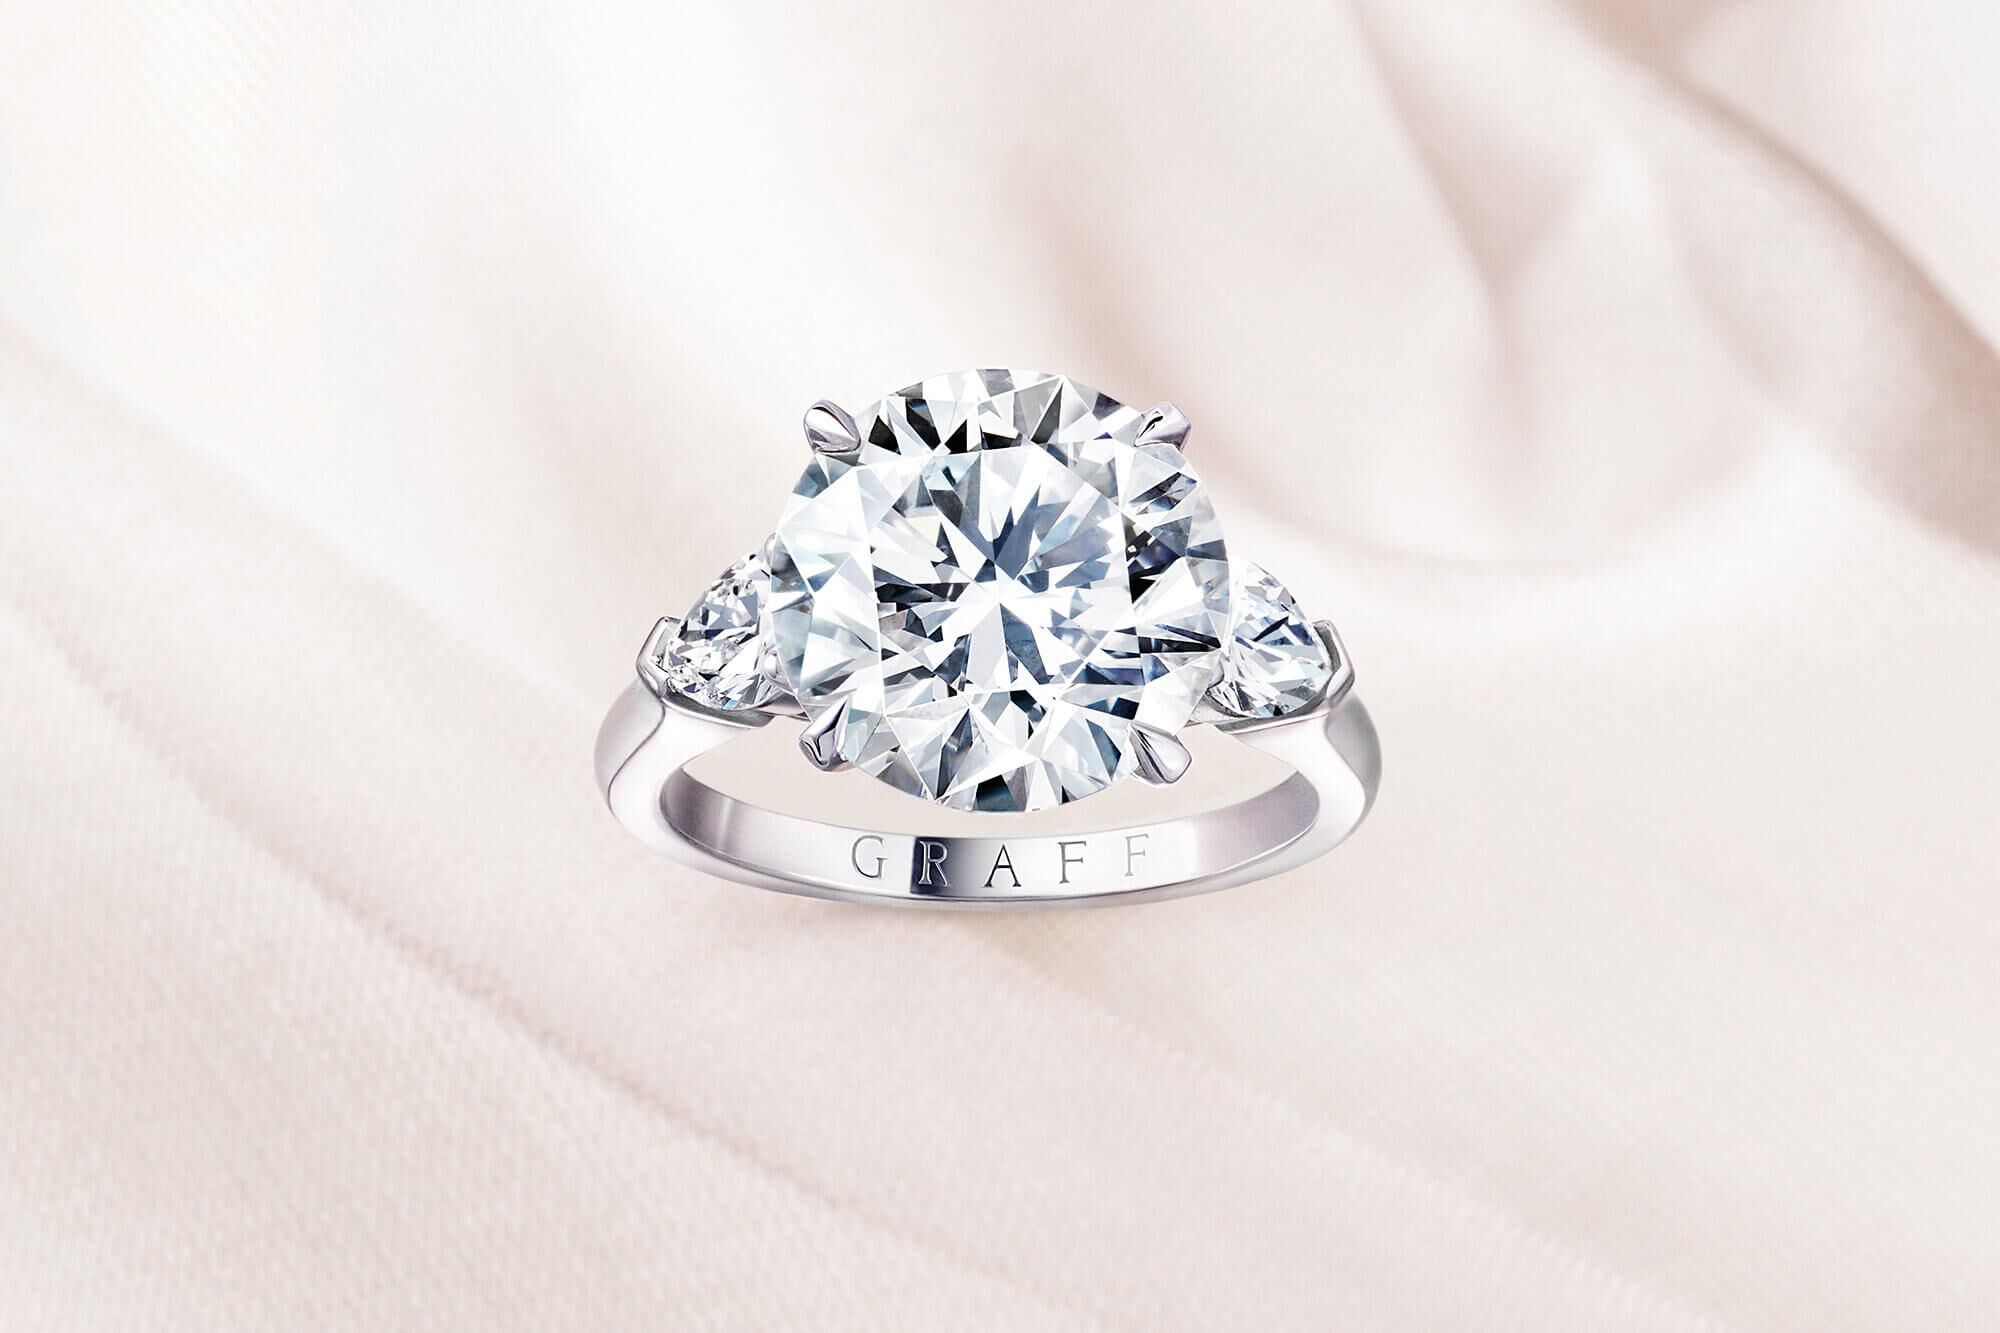 Close up of a Graff Promise round diamond engagement ring